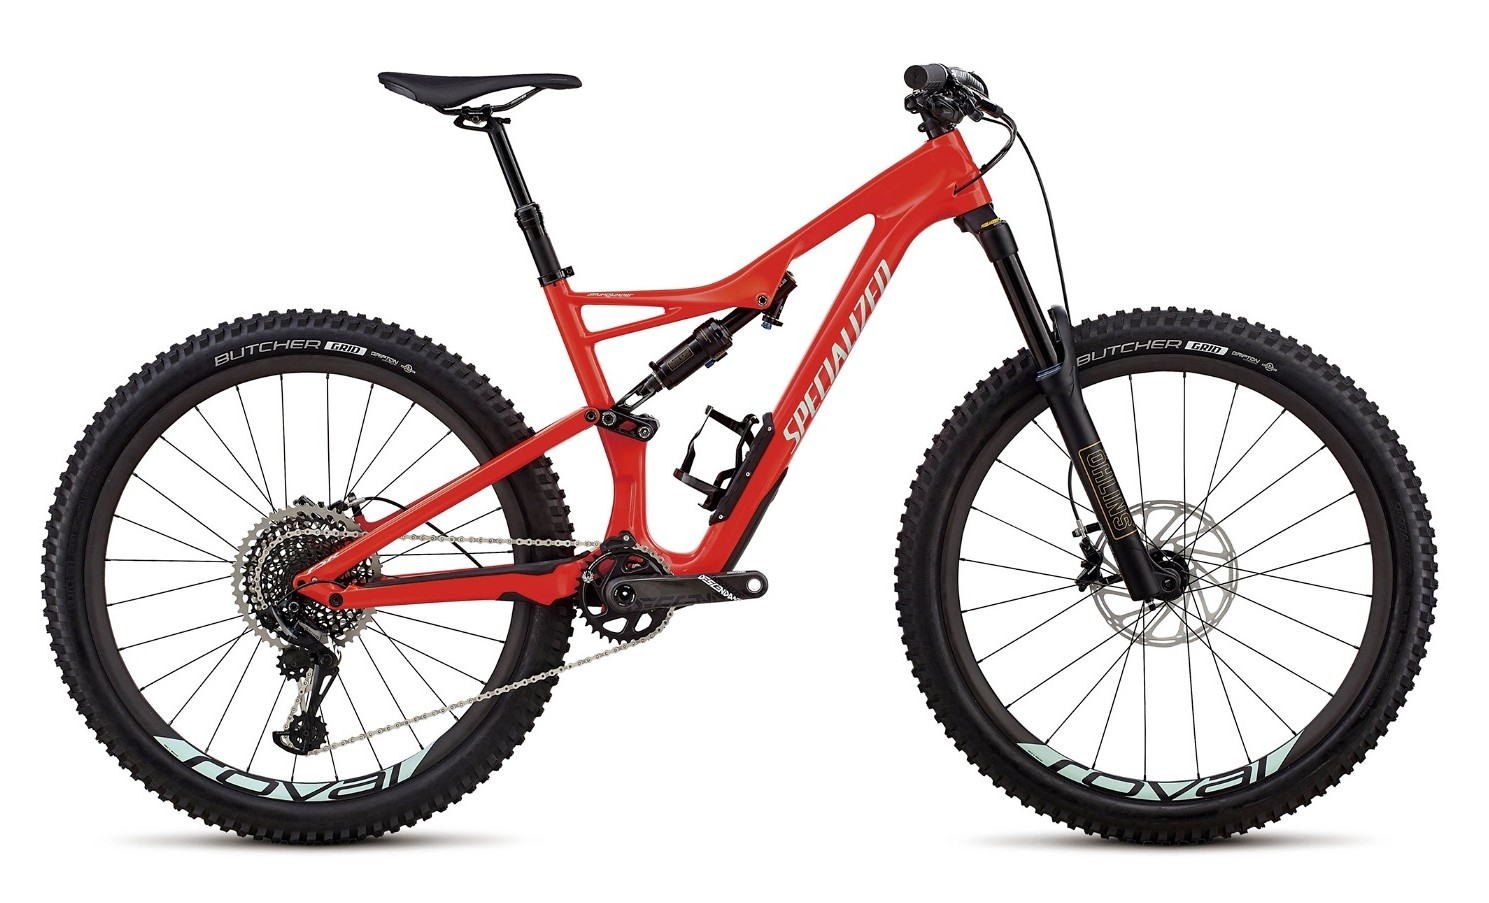 2018_Specialized_Stumpjumper_Pro_27.5_red01